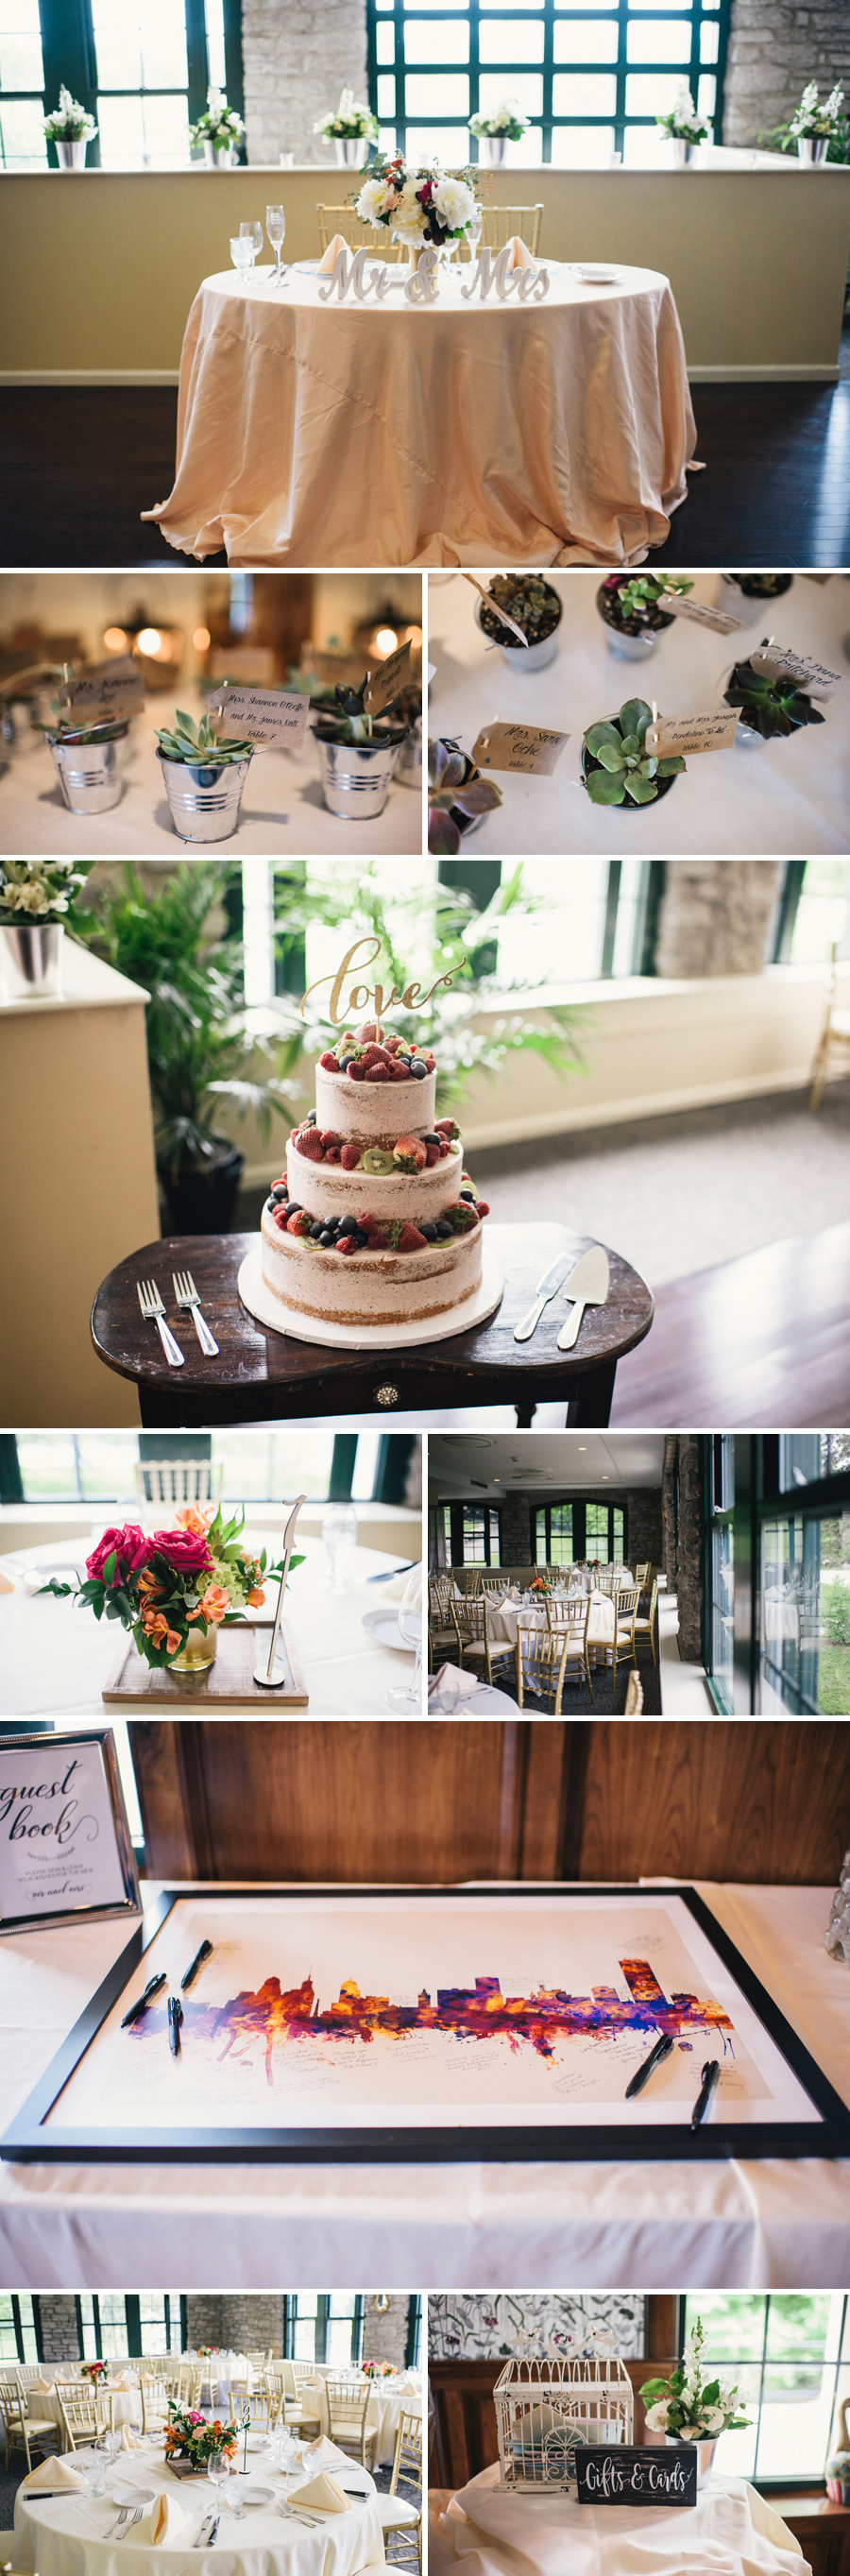 reception decor inside marcy casino with cake and succulent favors